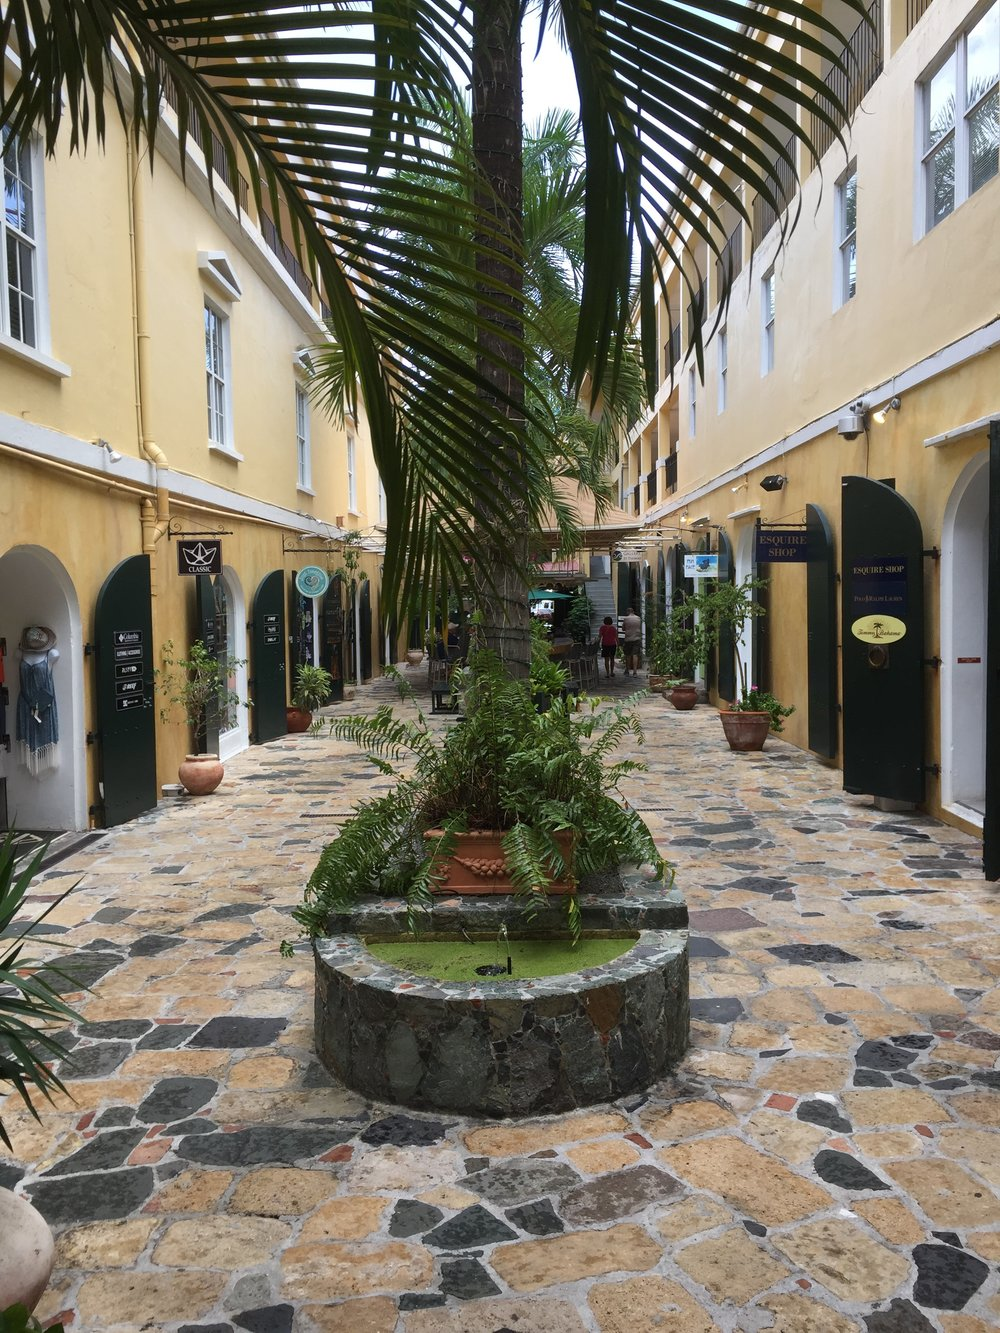 Quaint little shopping areas like this one abound in Charlotte Amalie